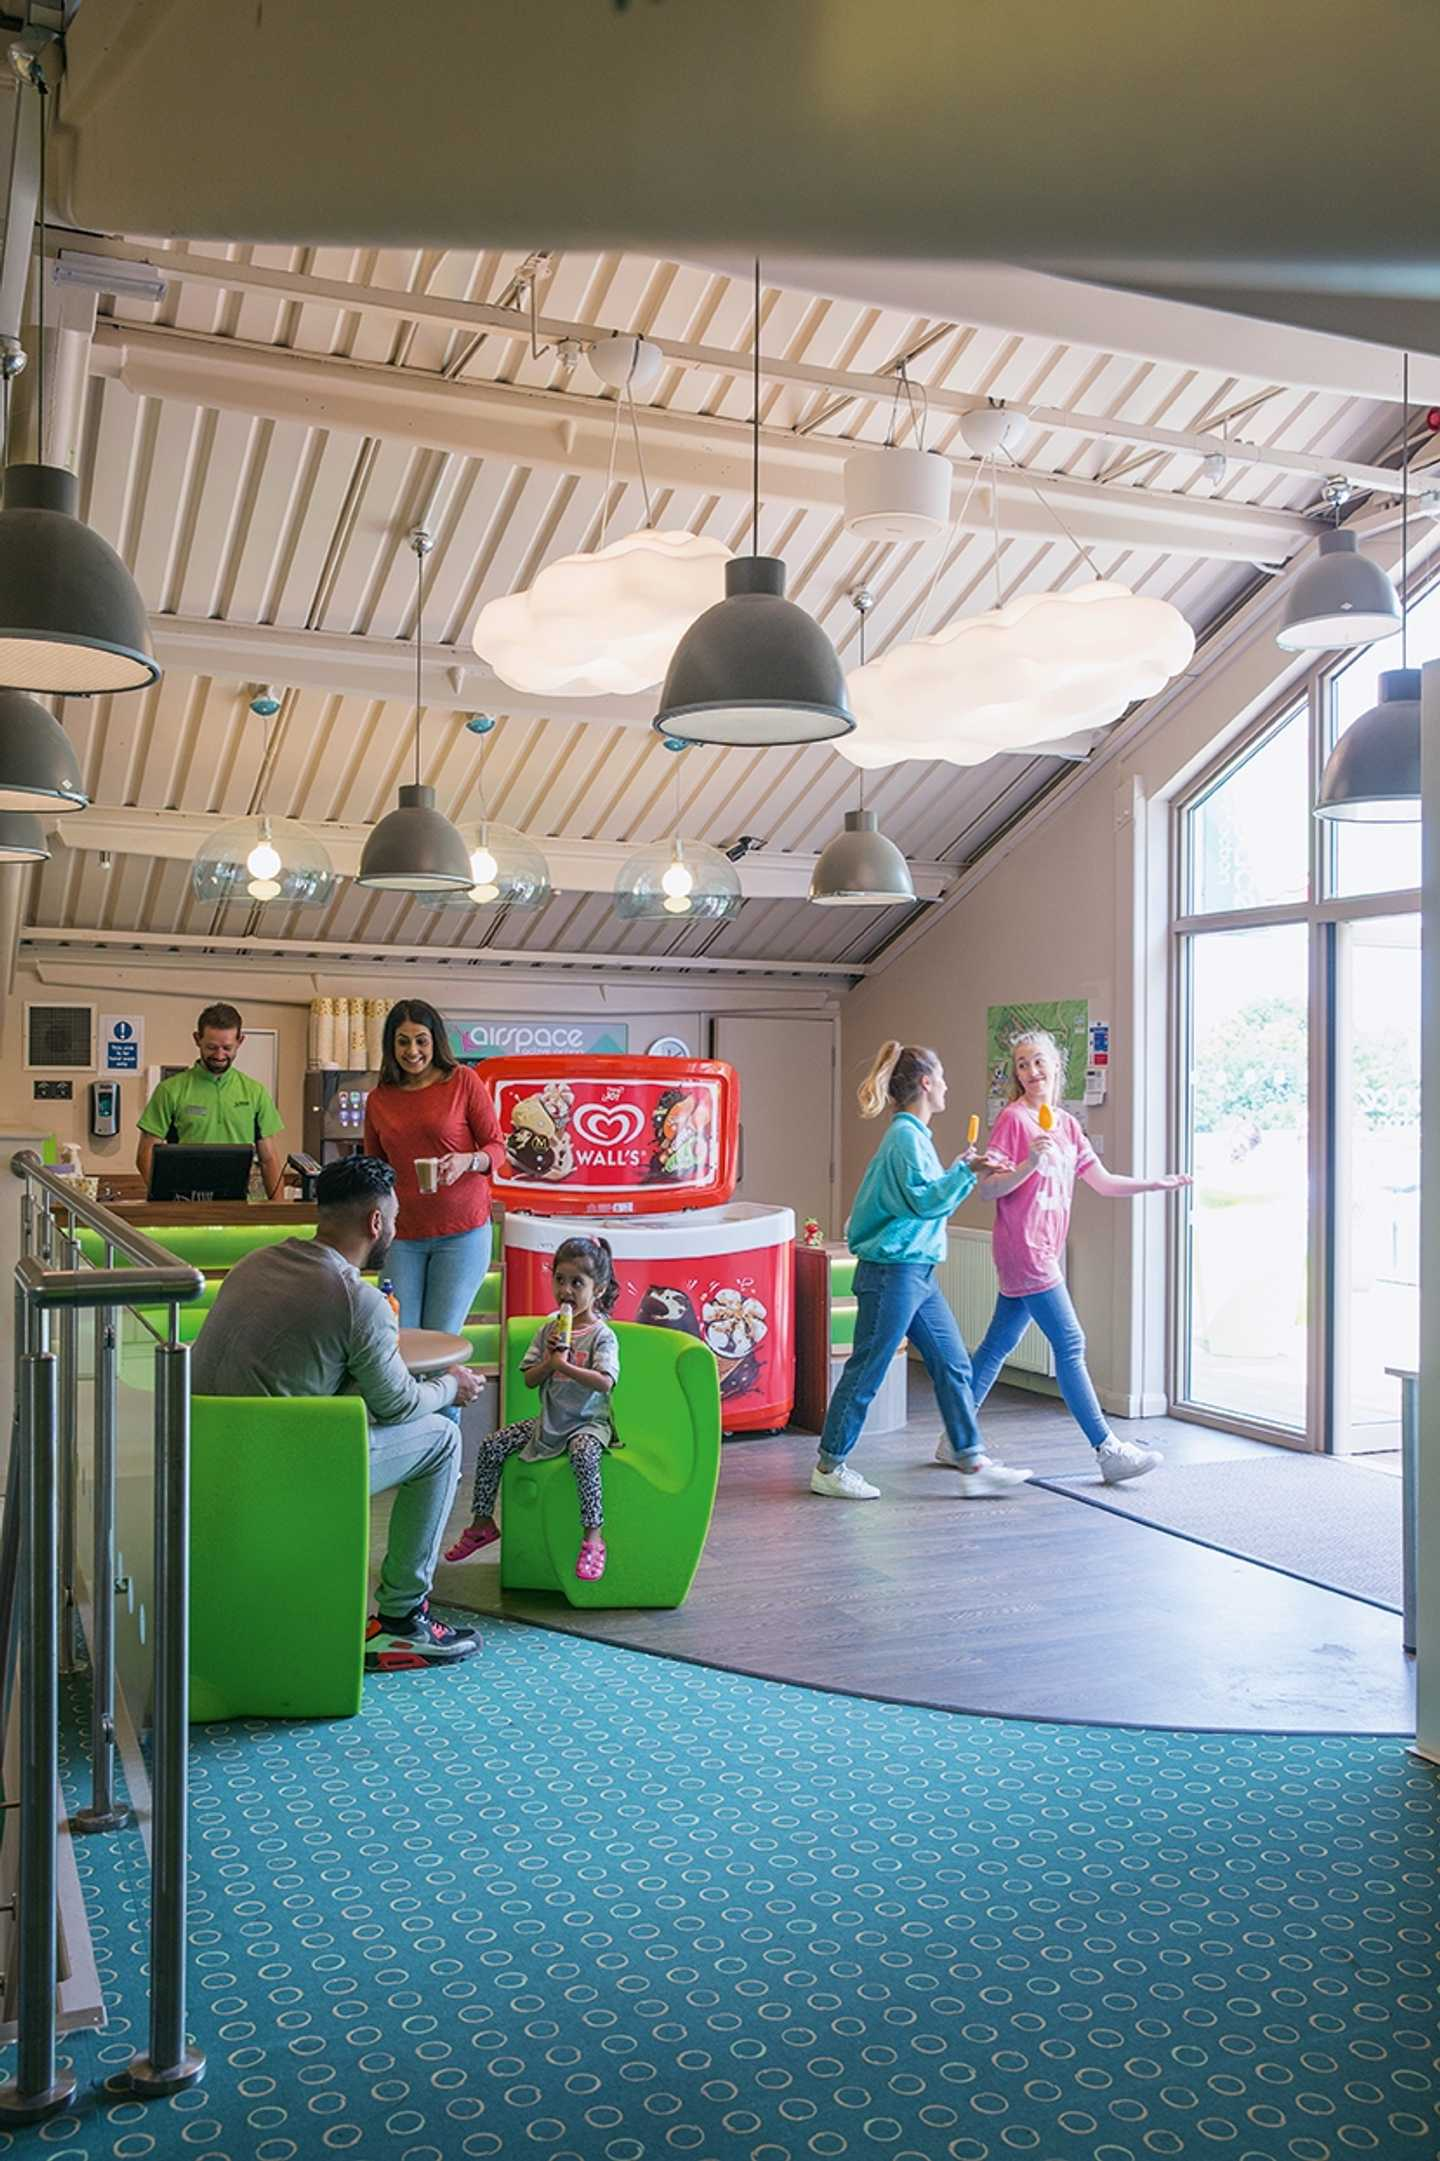 Kids in the Airspace reception